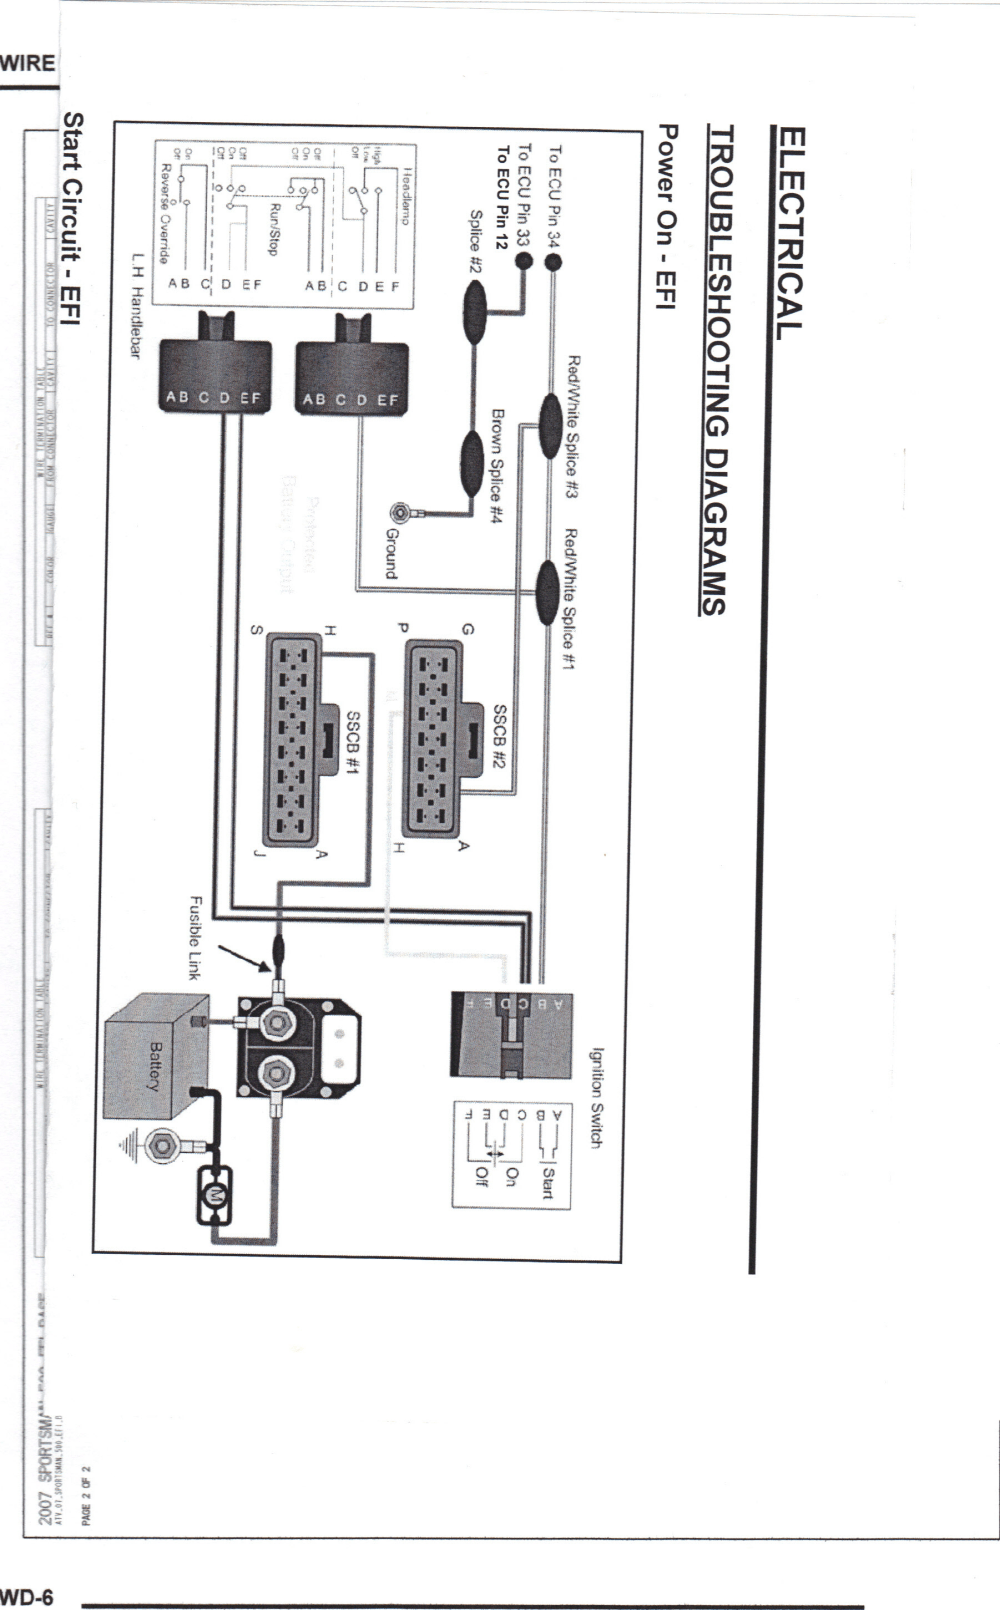 medium resolution of 2004 polaris 500 ho wiring diagram trusted wiring diagram 2011 polaris 500 sportsman key diagram wiring 2004 polaris ranger 6x6